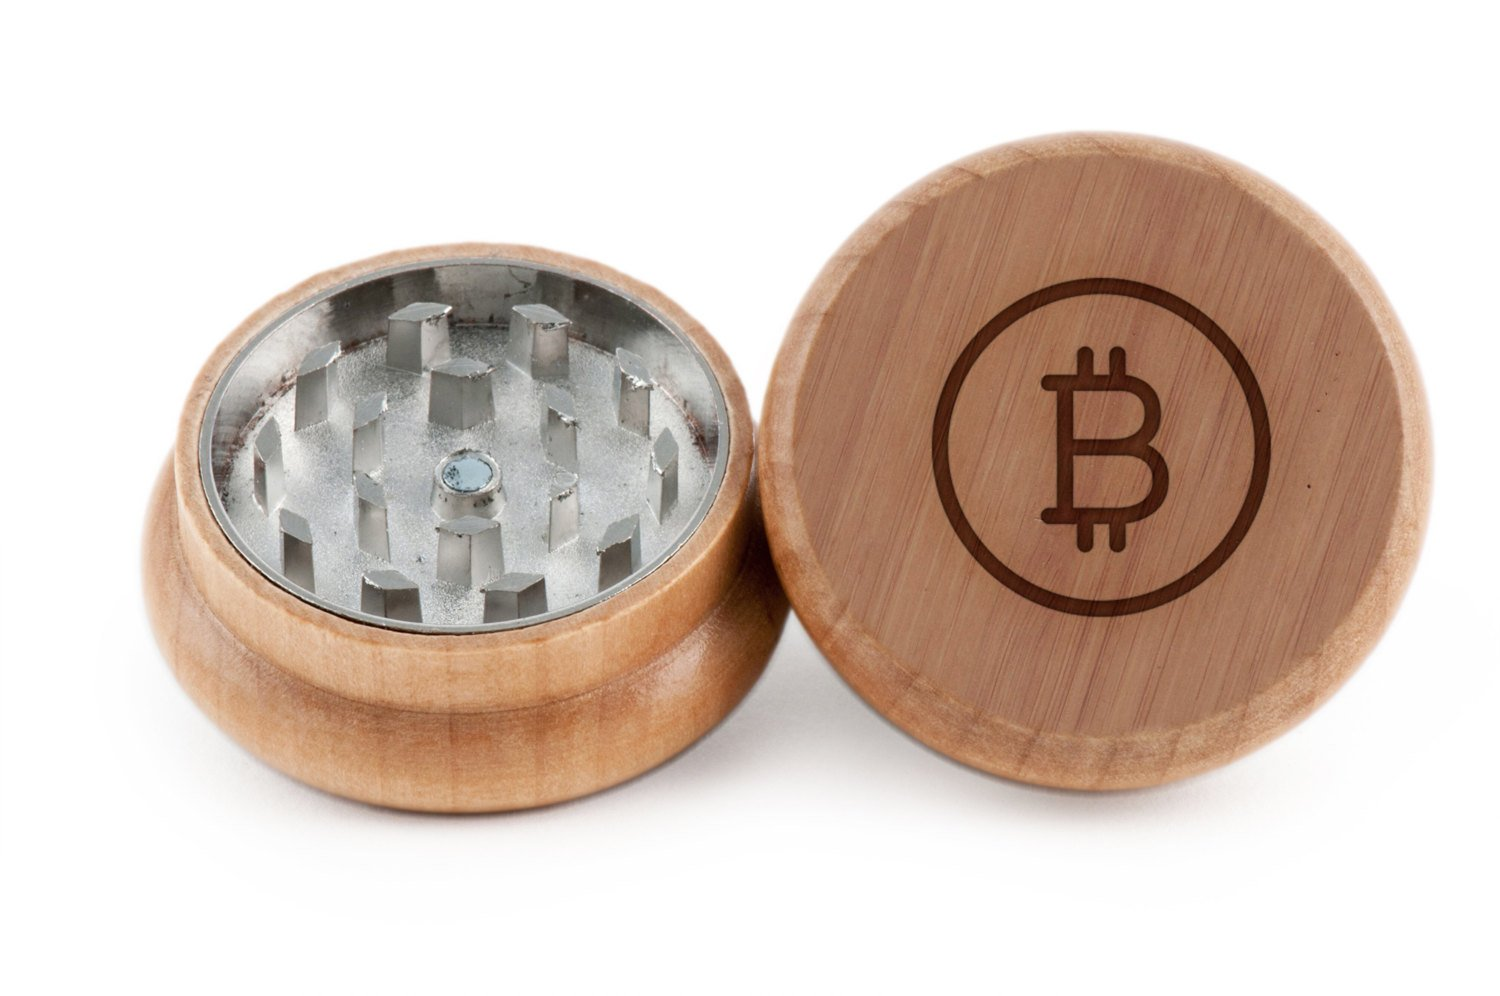 GRINDCANDY Spice And Herb Grinder - Laser Etched Bitcoin Design - Manual Oak Pepper Grinder